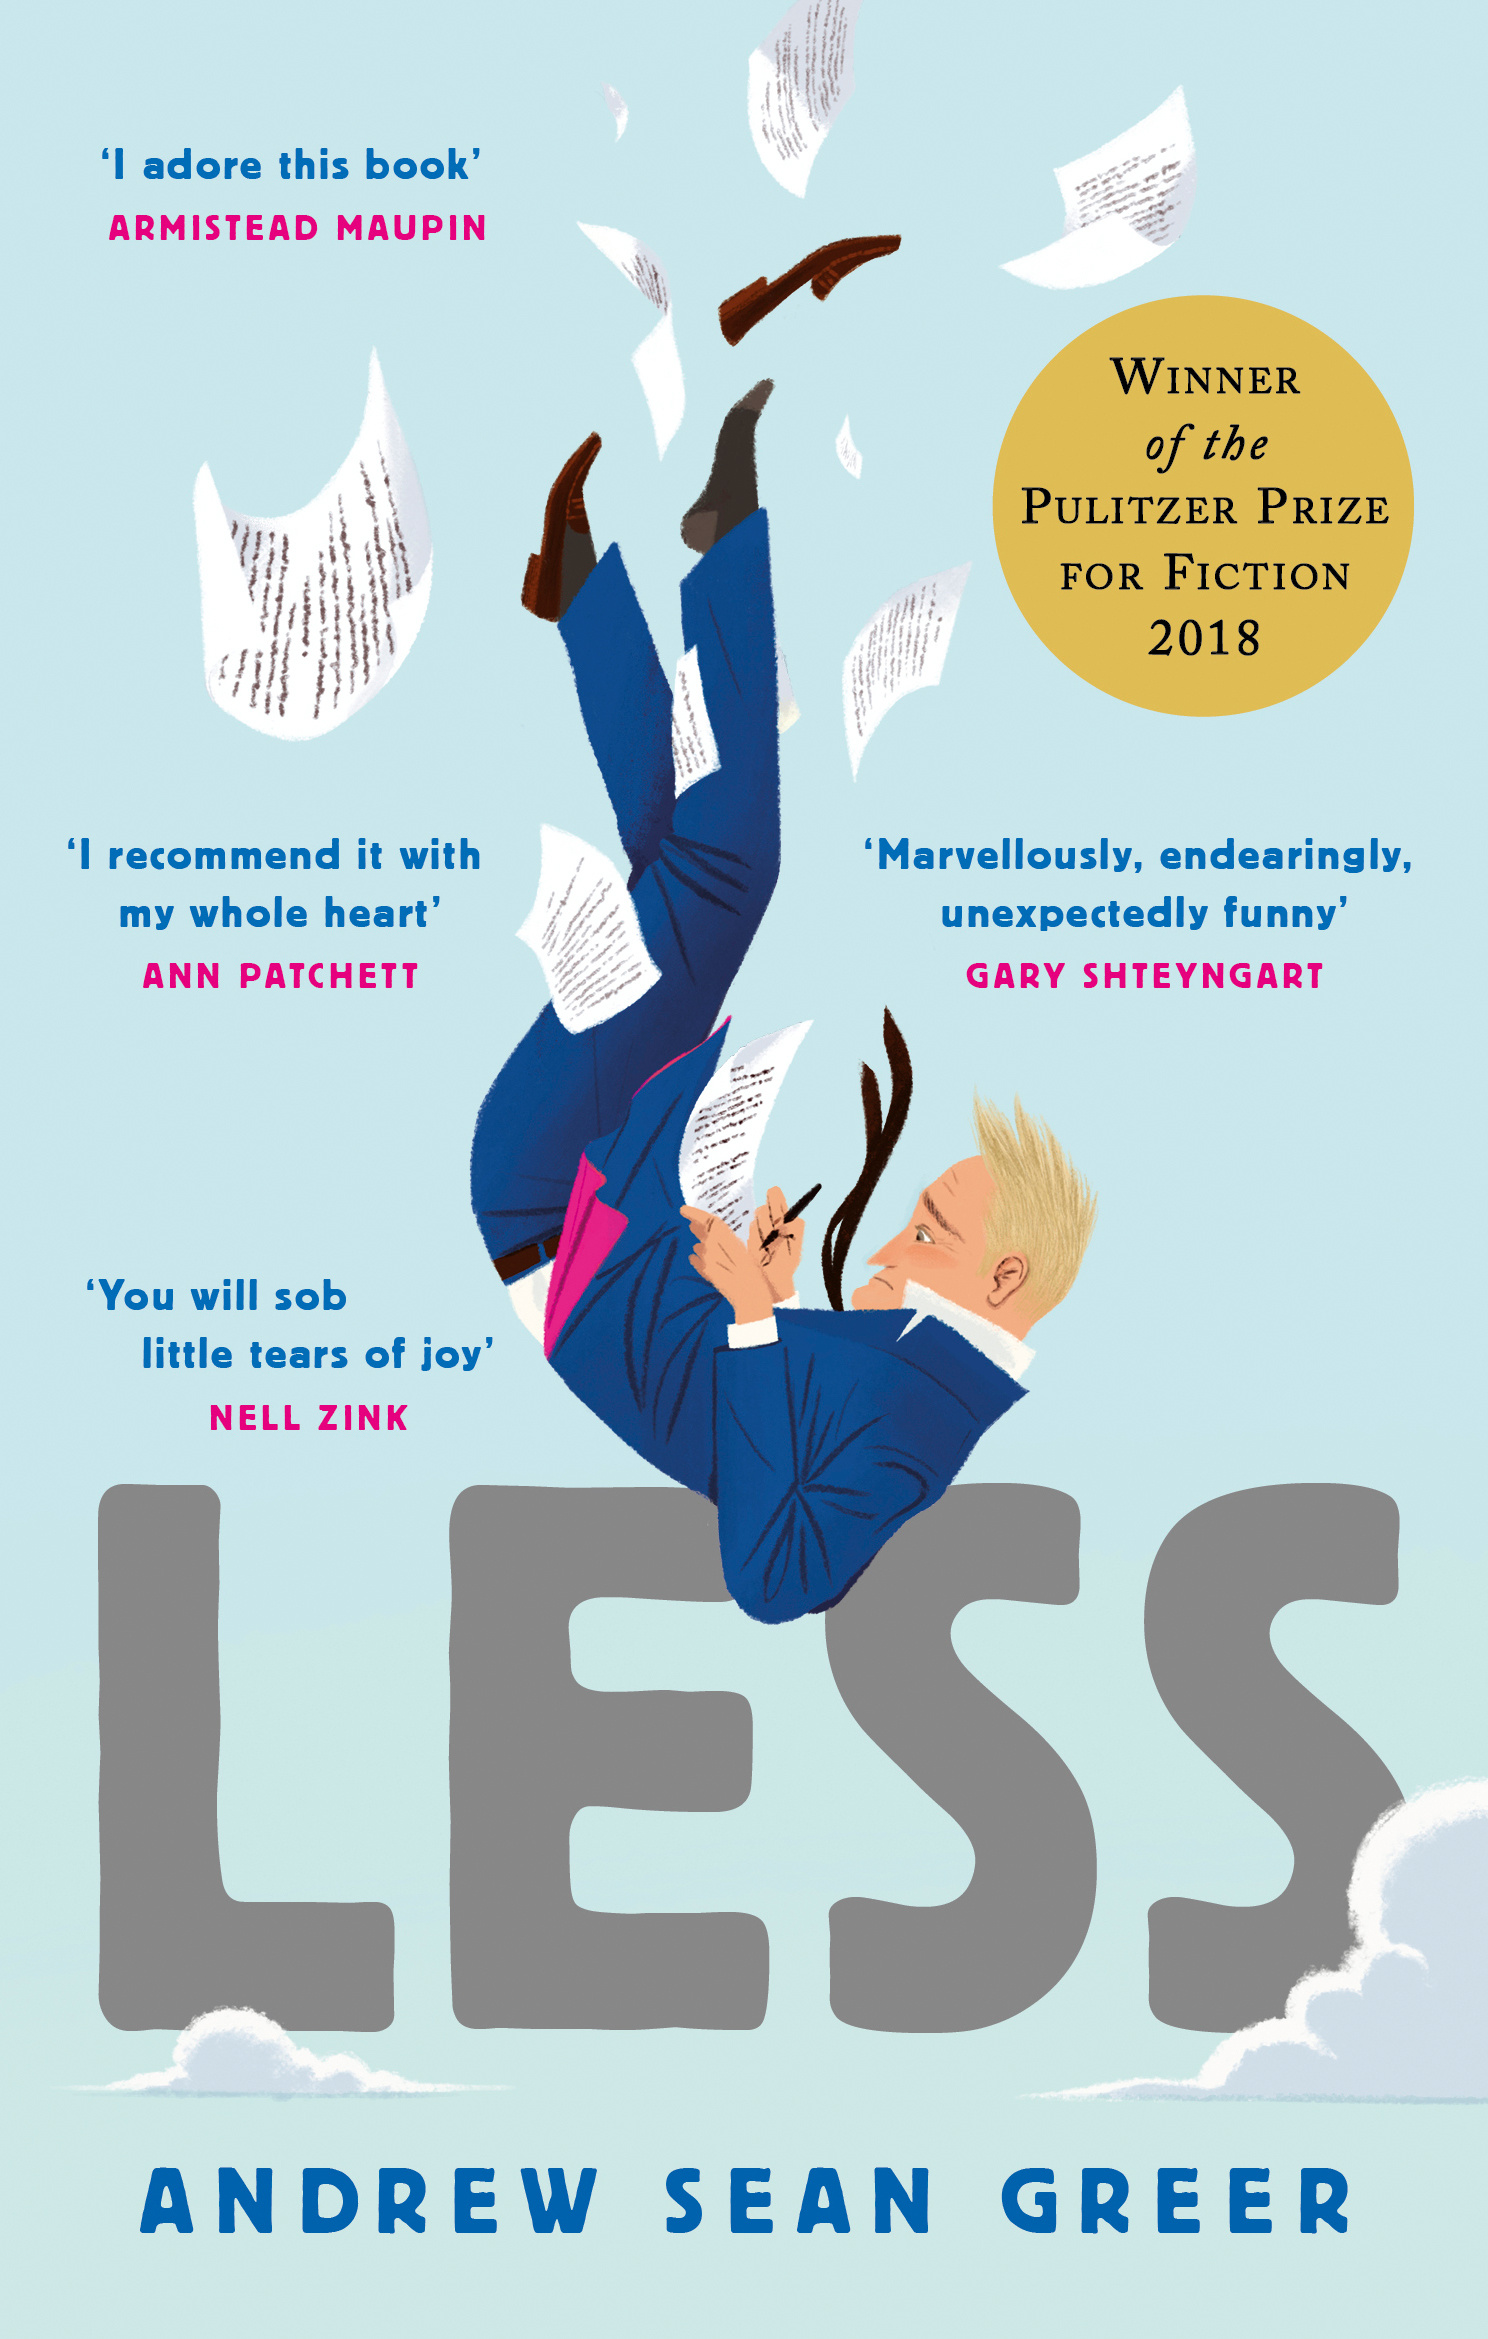 LessWinner of the 2018 Pulitzer Prize for Fiction by Andrew Sean Greer, ISBN: 9780349143590